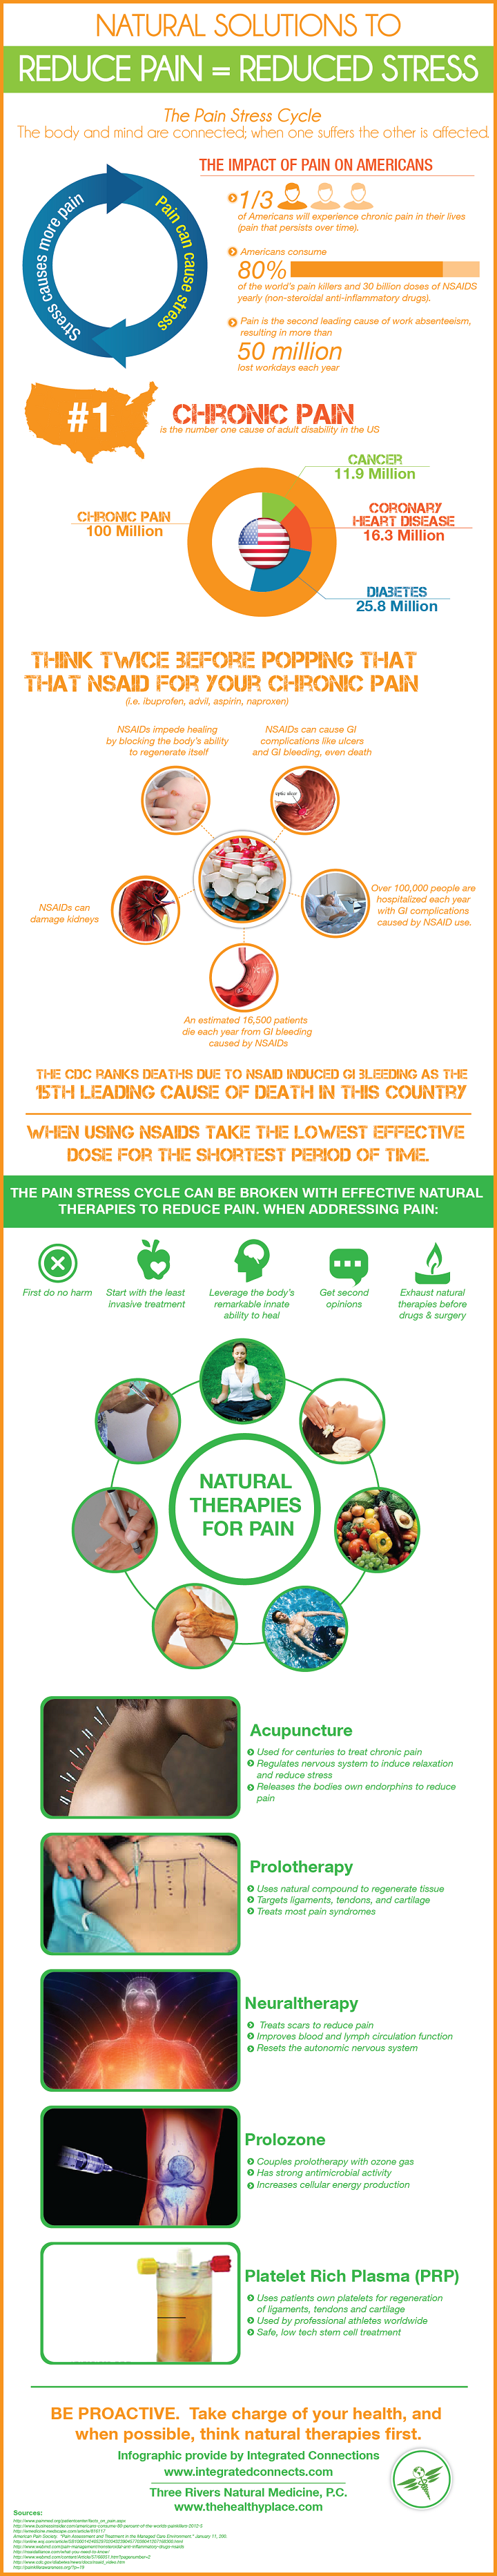 natural solutions for chronic pain infographic